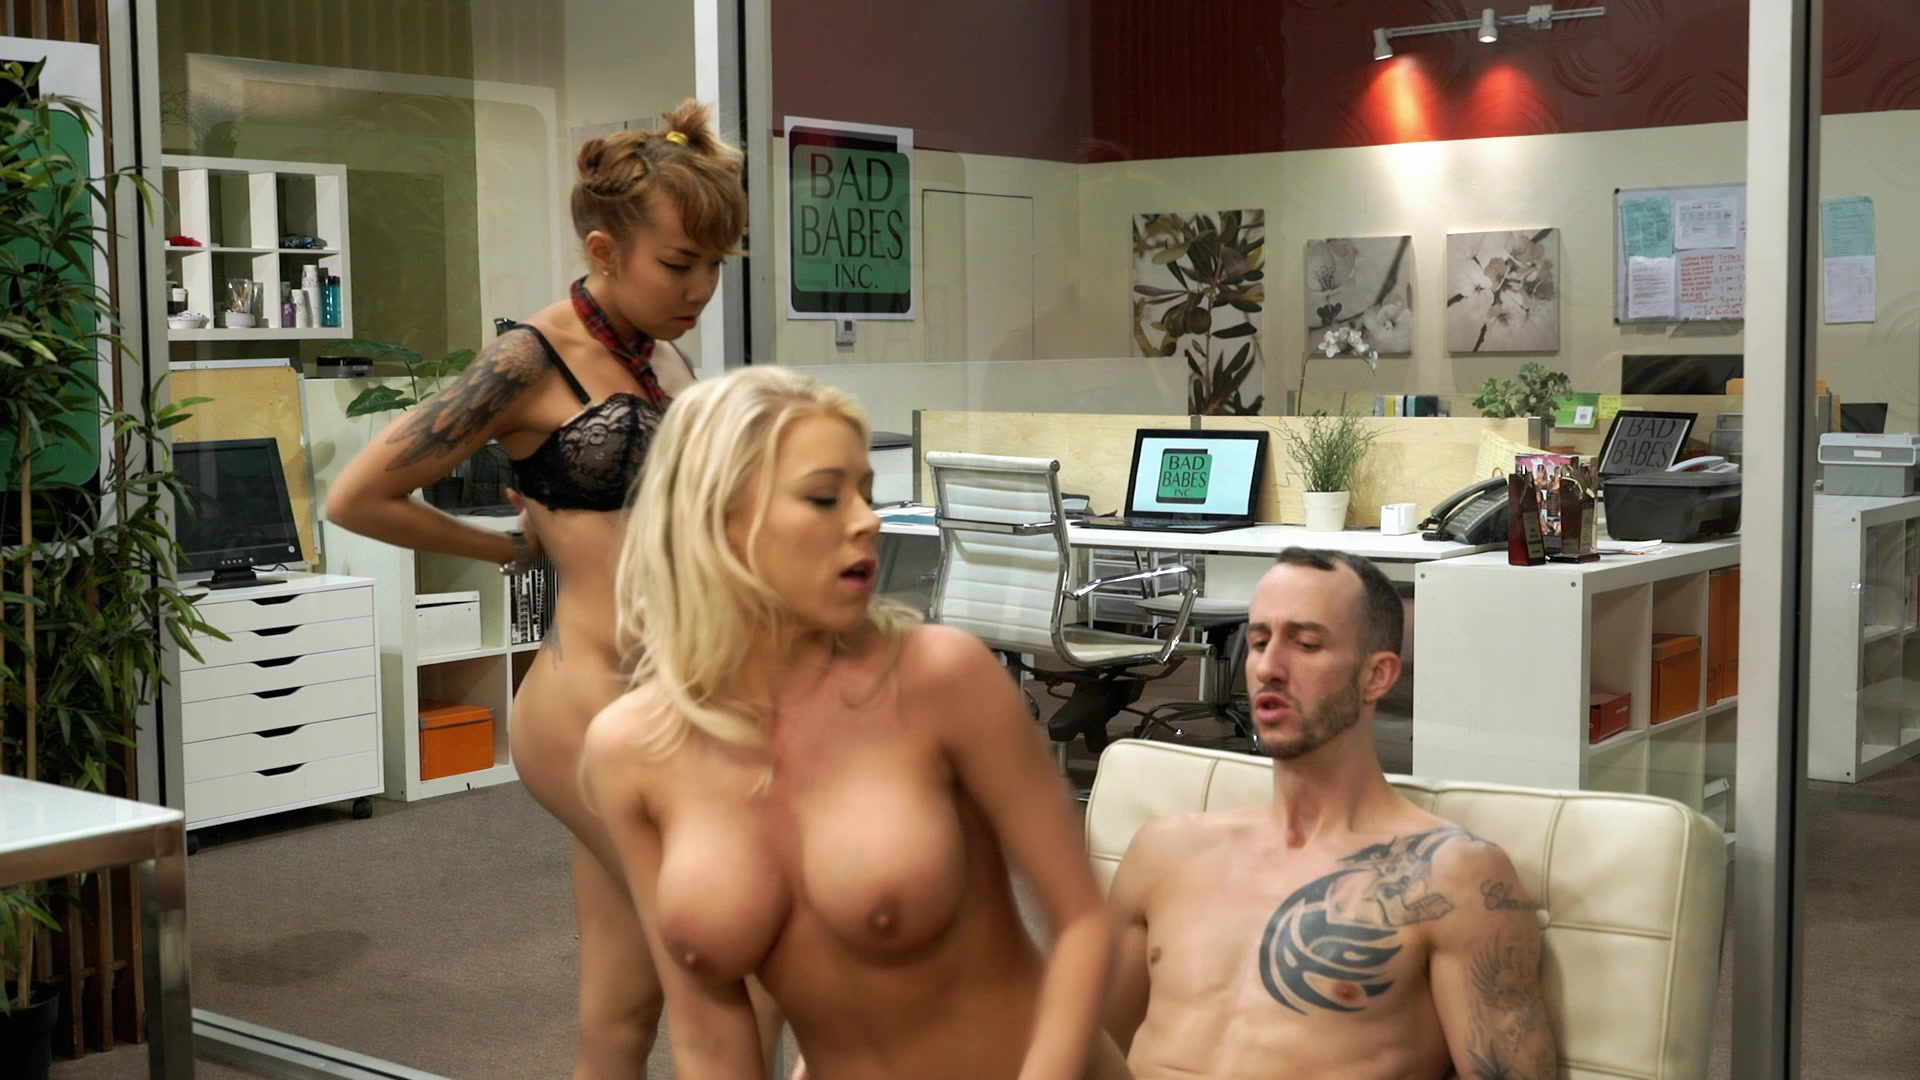 Scene with Katie Morgan and Kimberly Chi - image 19 out of 20